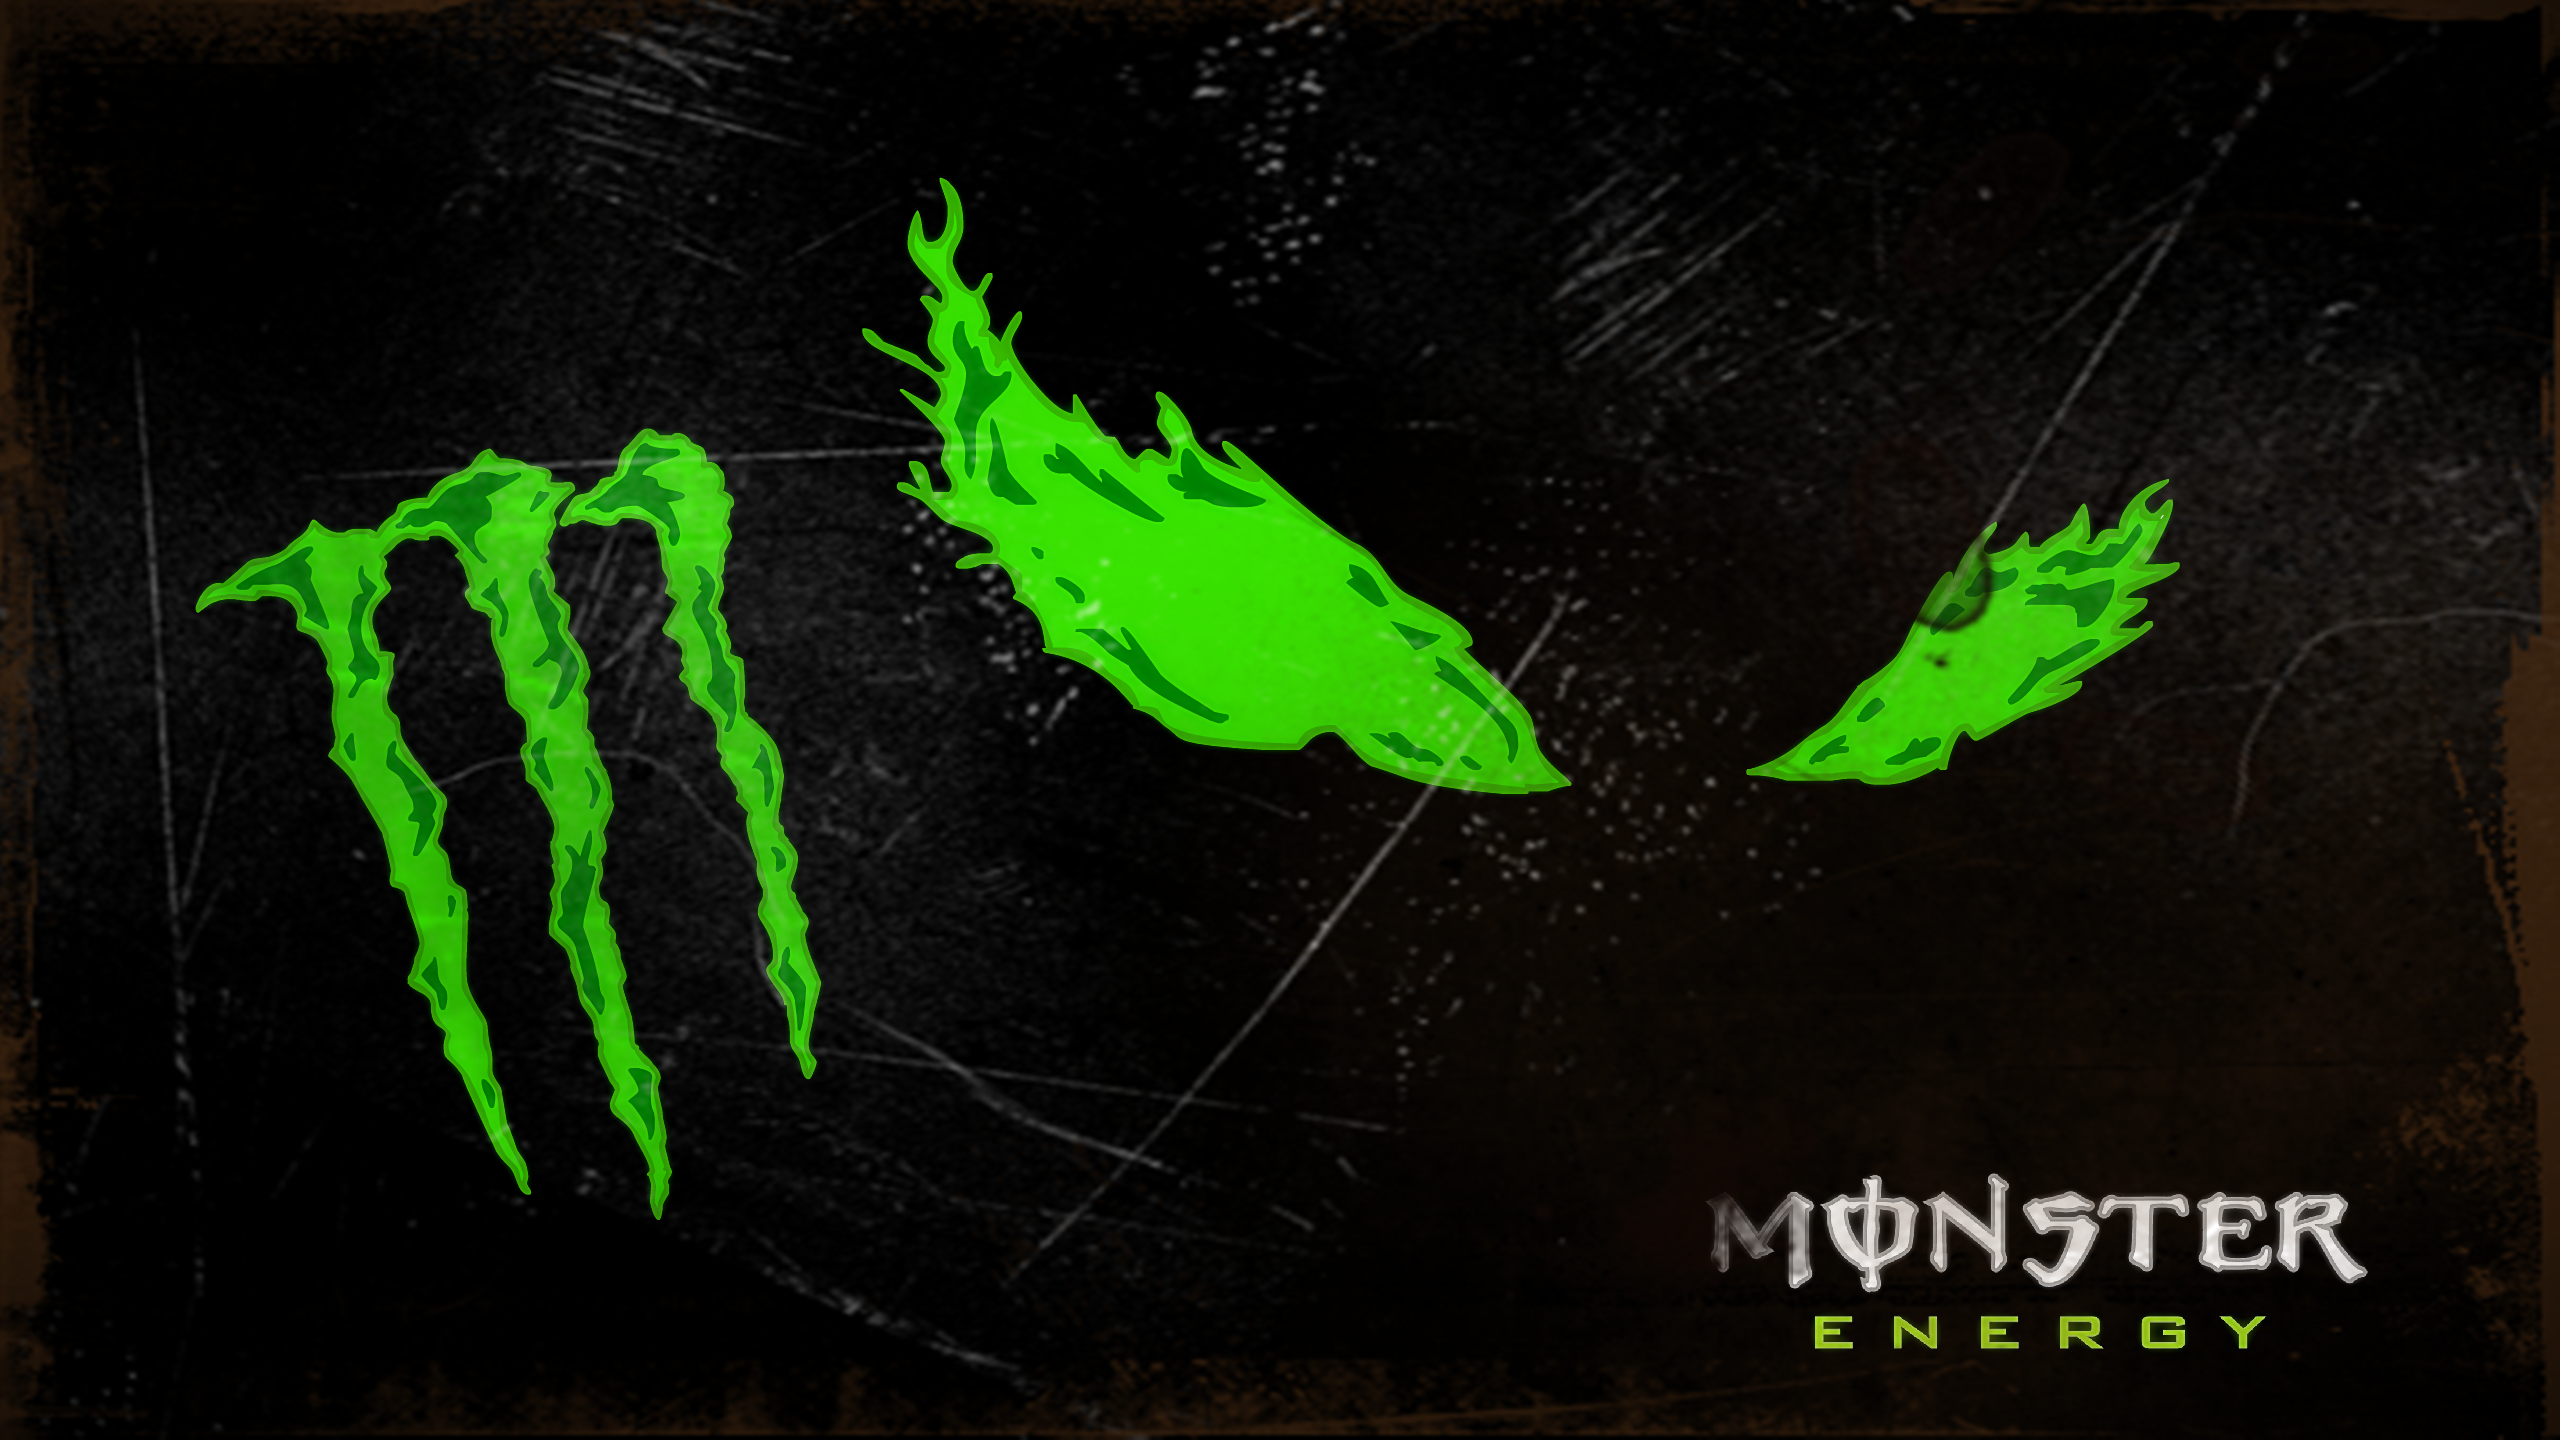 monster energy background by 8bitblackmage on newgrounds